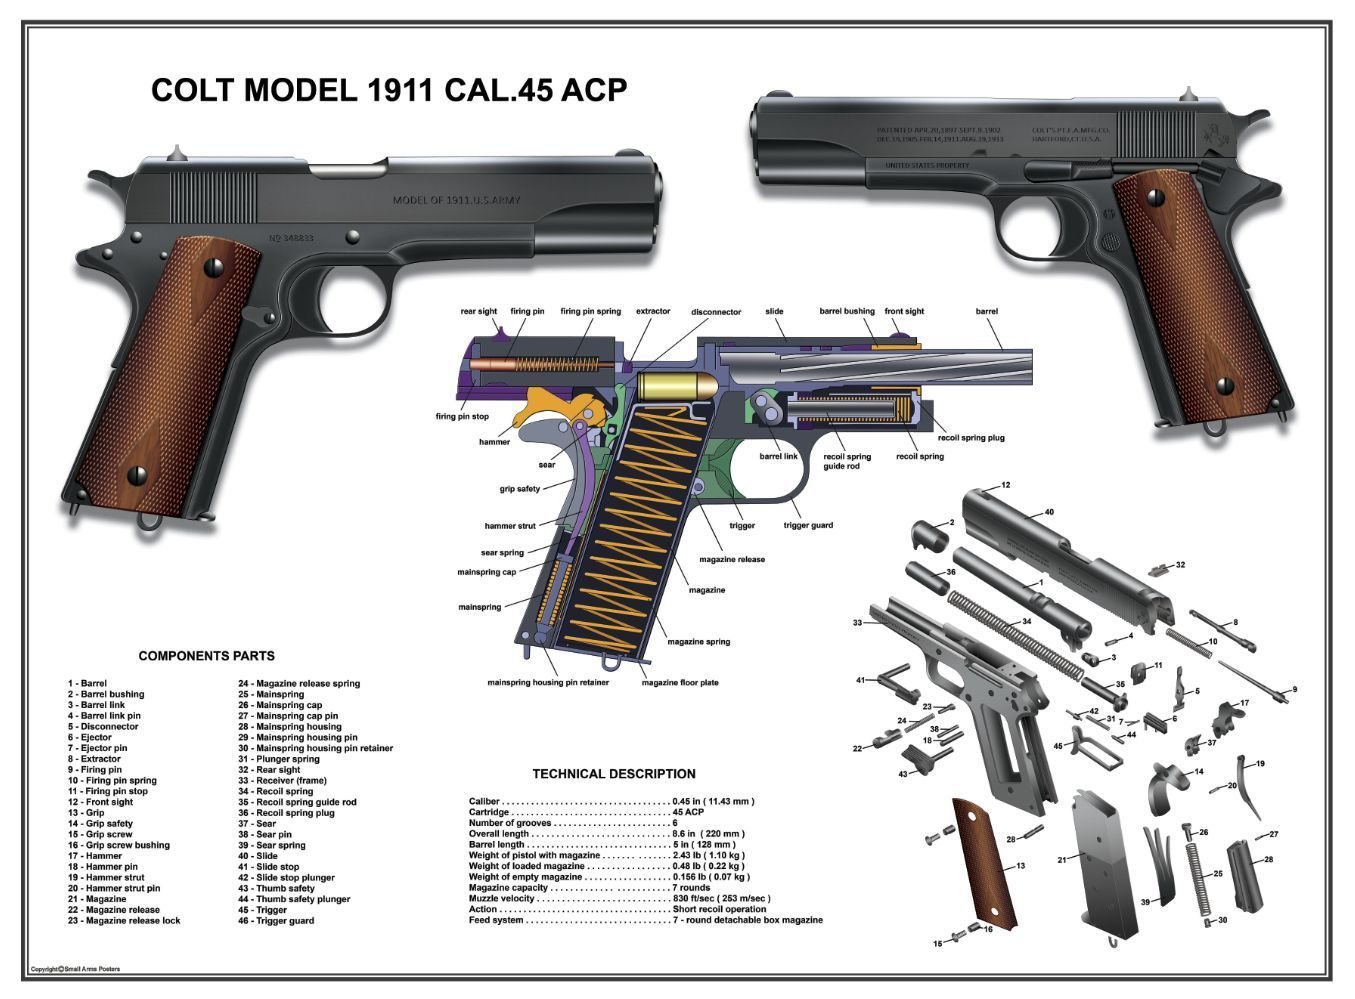 hight resolution of poster 12 x18 u s army colt 1911 cal 45 acp manual exploded parts diagram ww2 ebay